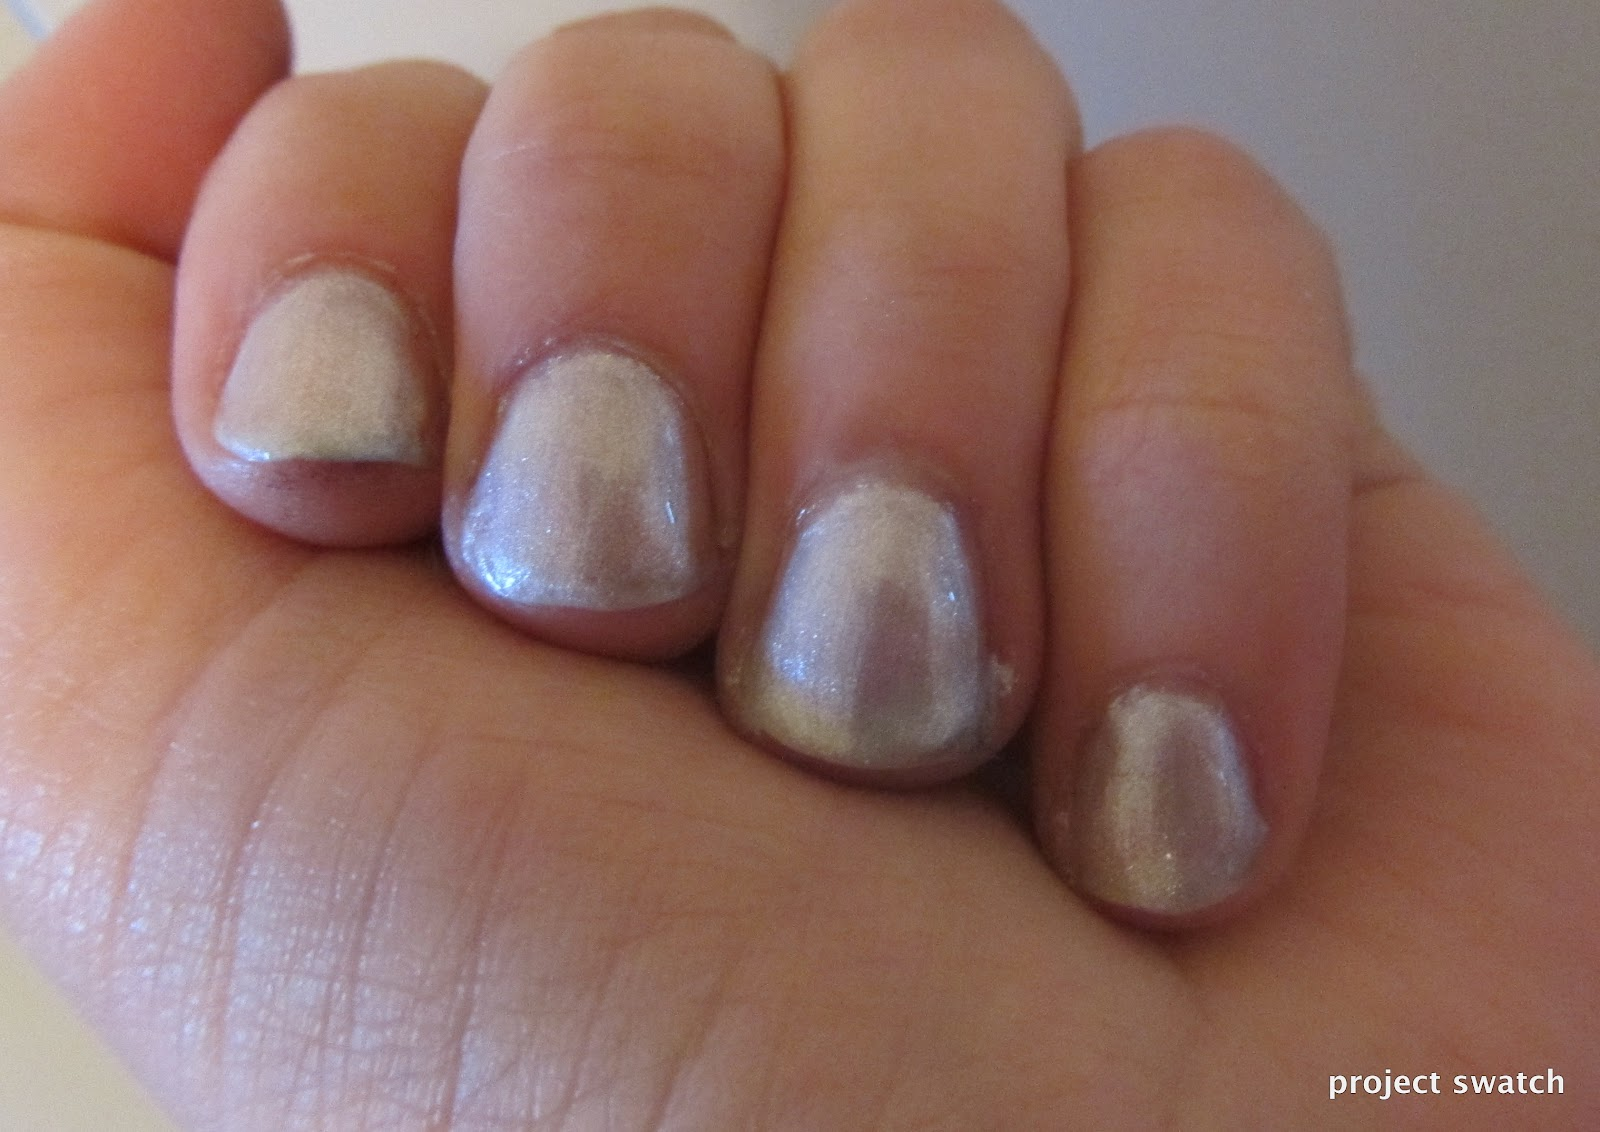 Red Carpet Manicure System Review, Photos - Project Swatch